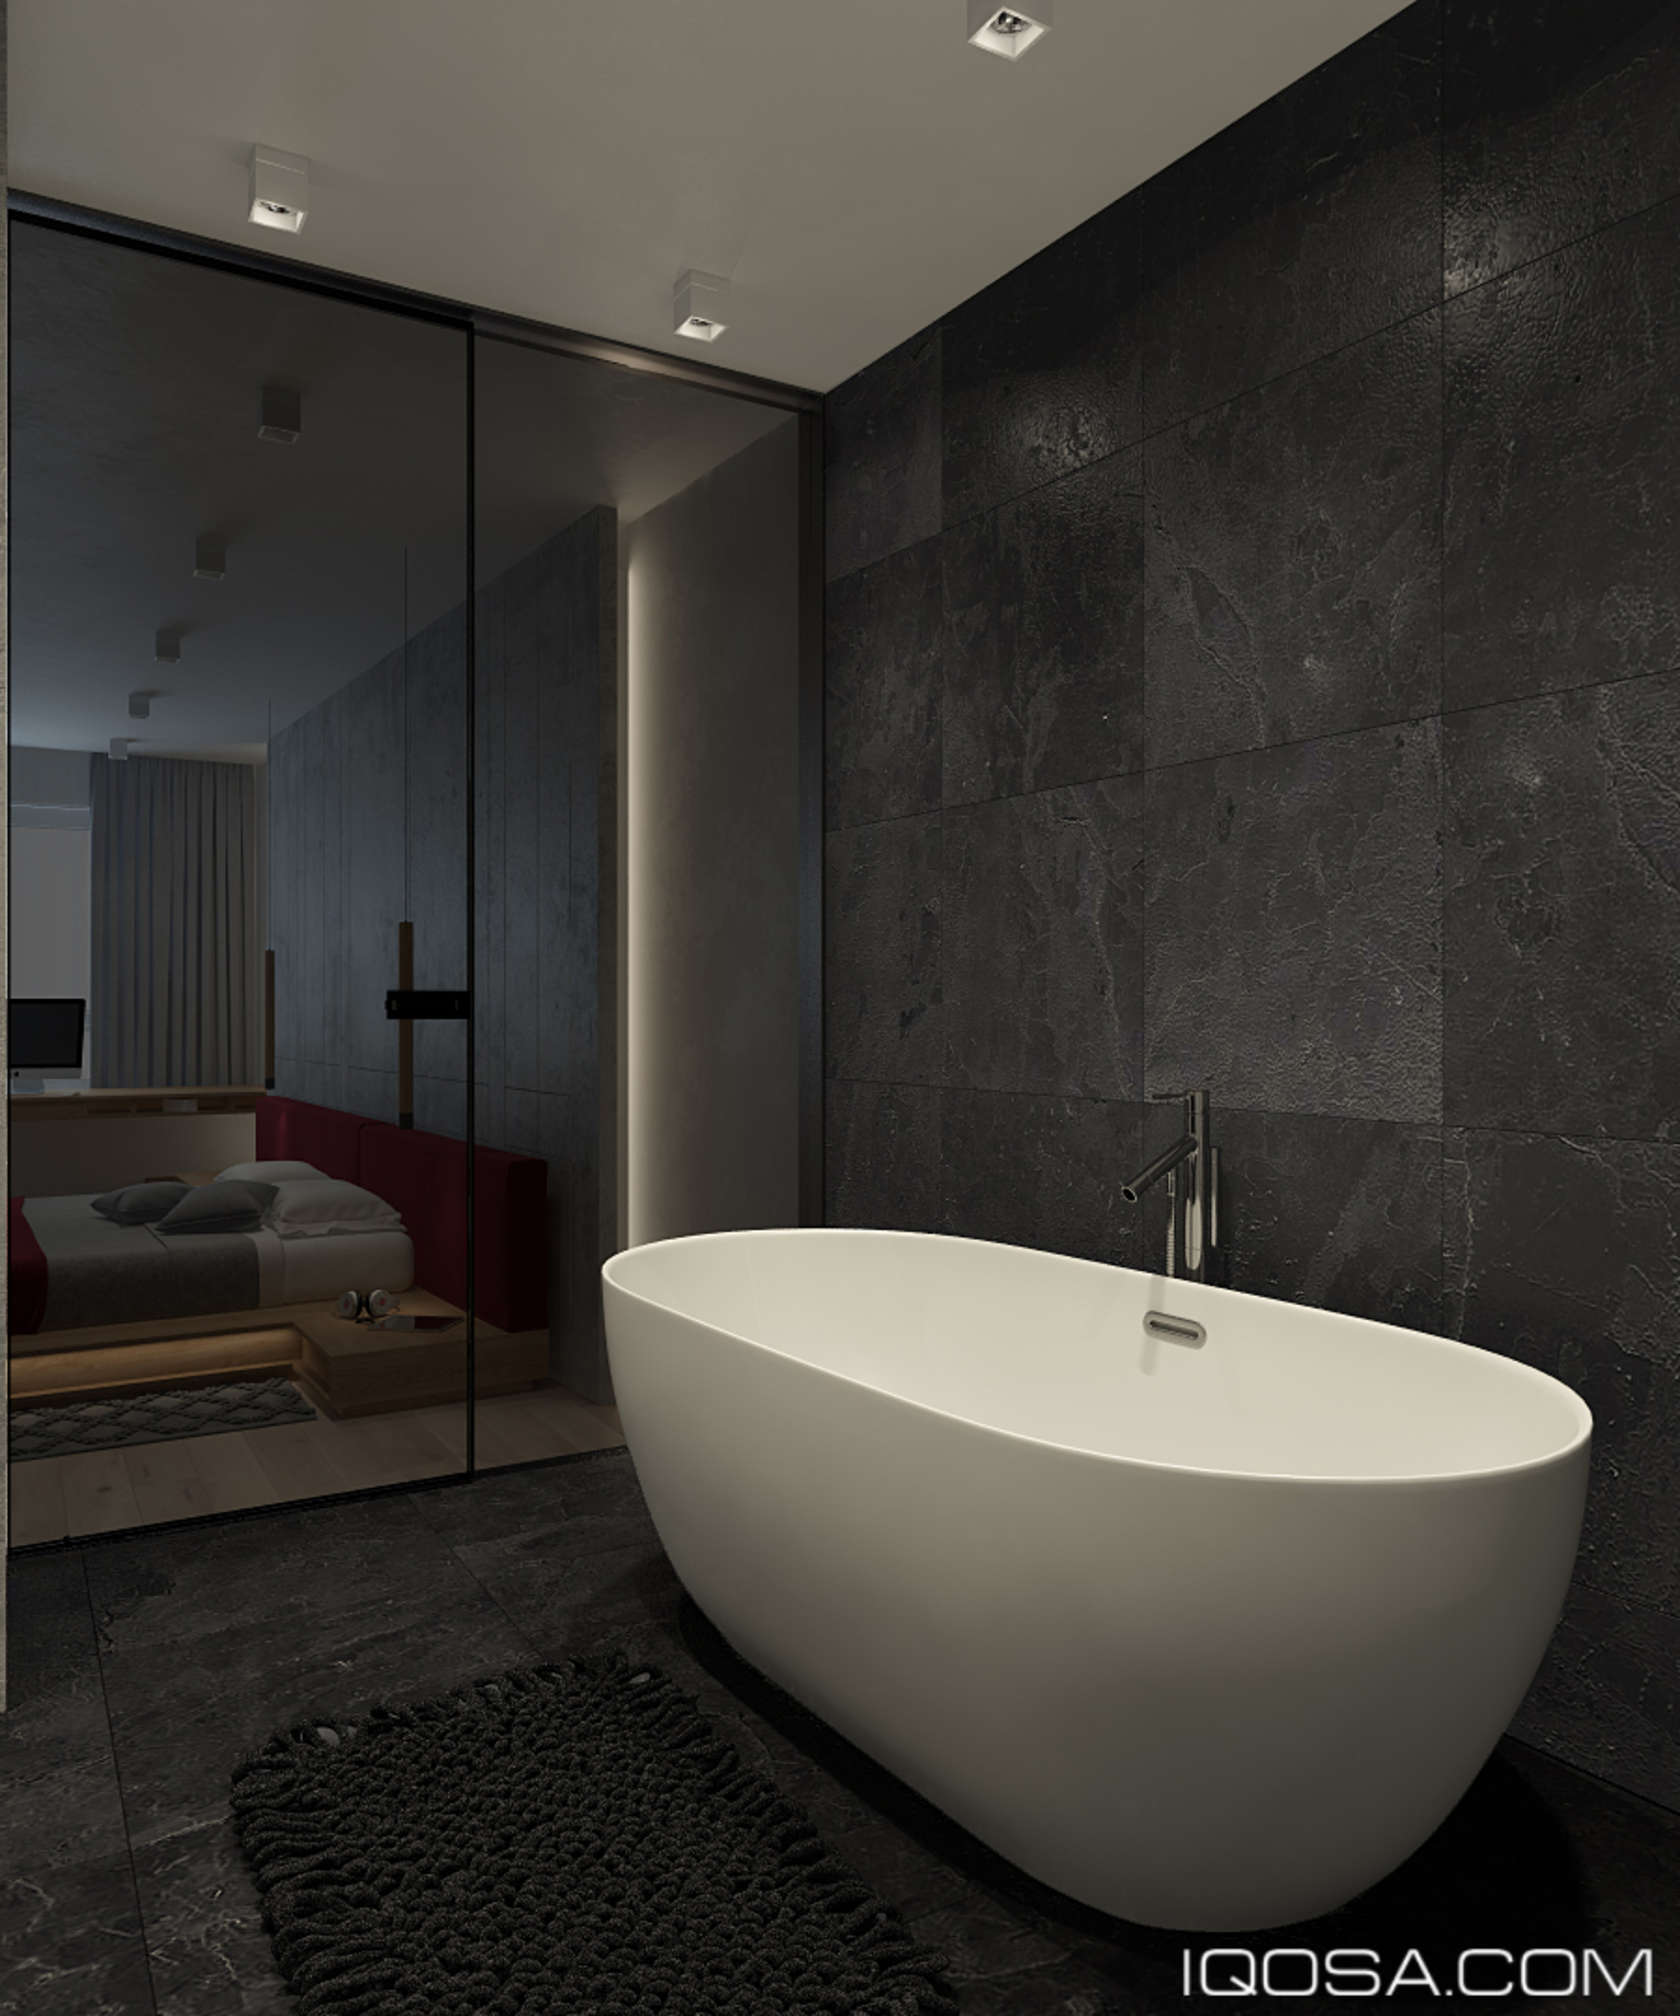 An Approachable Take On Luxury Apartment Design - Luxury apartments bathrooms